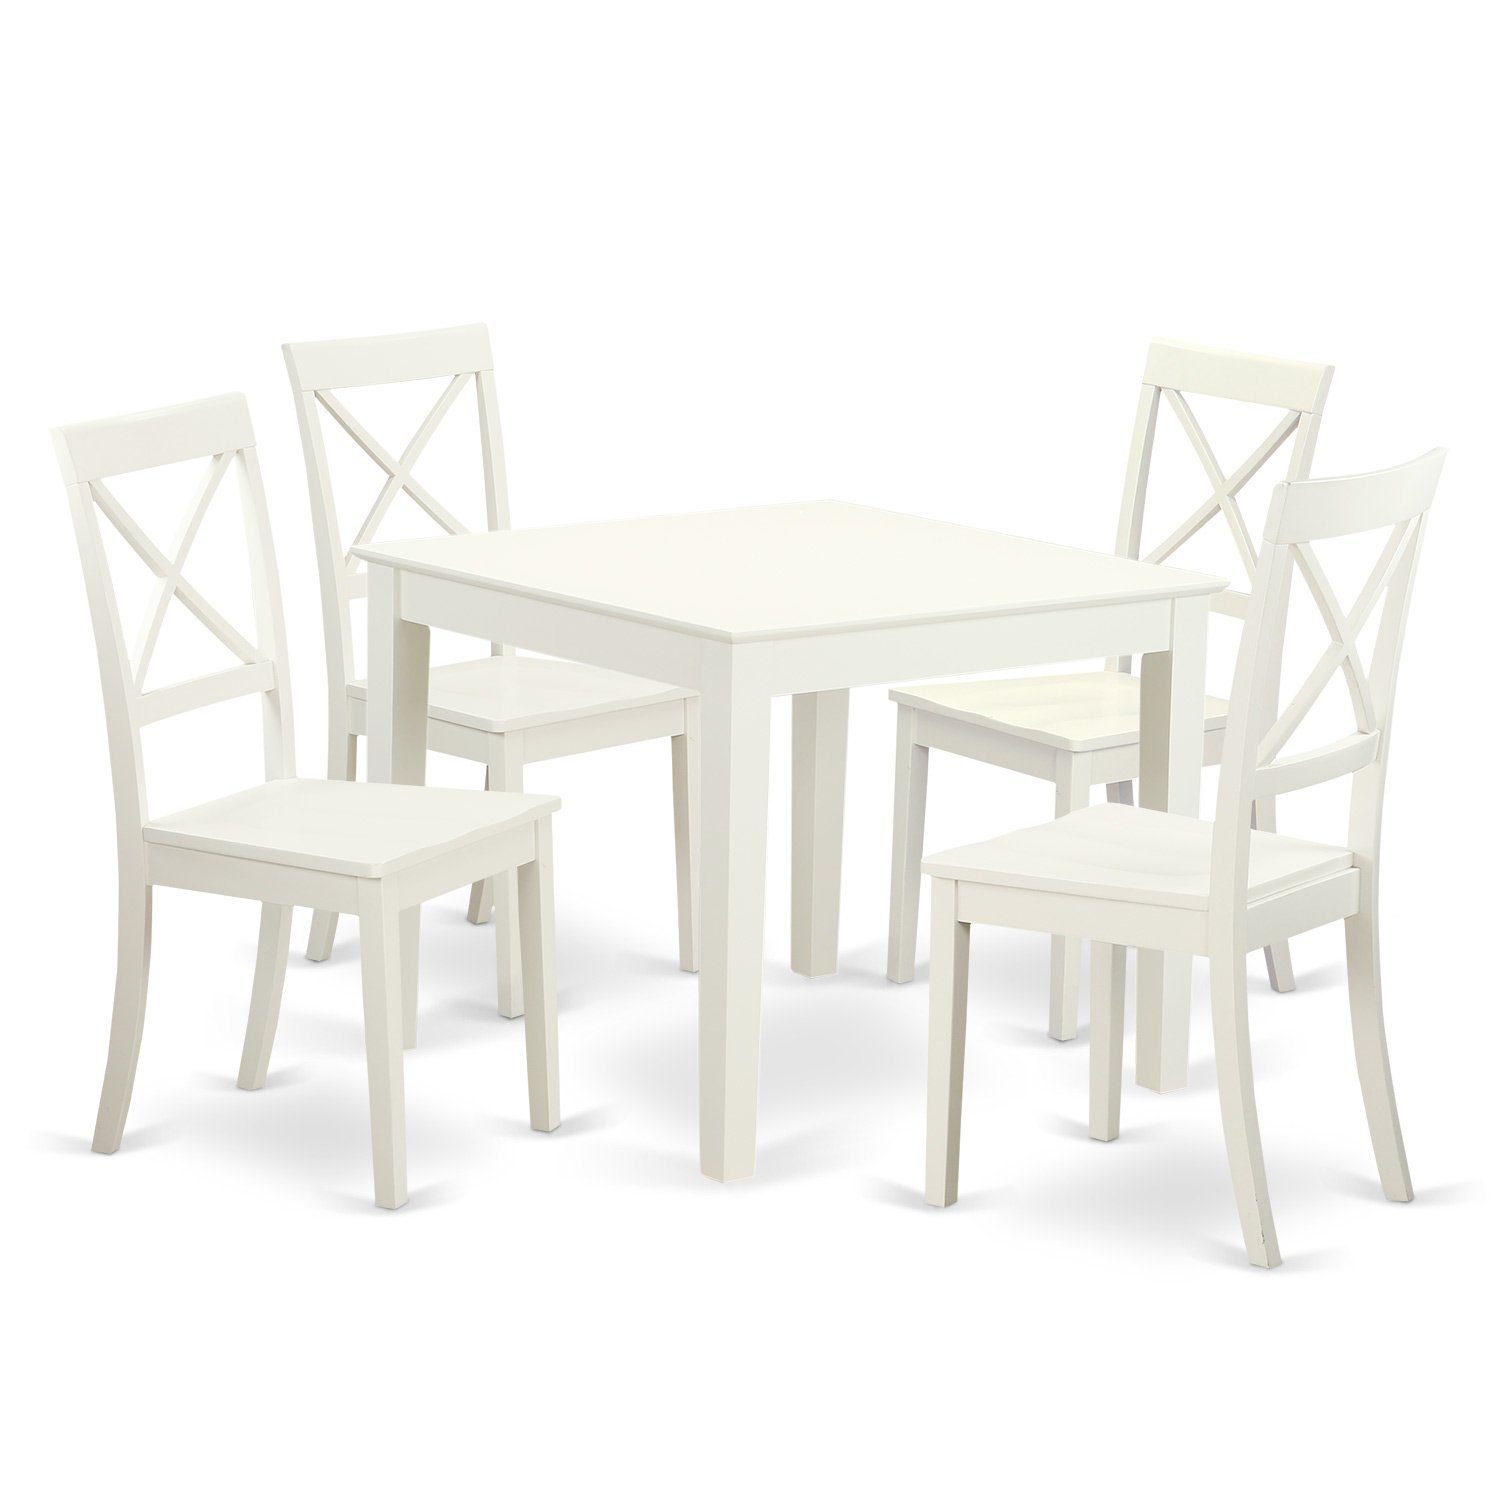 Amazon com east west furniture oxbo5 lwh w 5piece small kitchen table set 4 hardwood dining chairs oxford in linen white finish kitchen dining